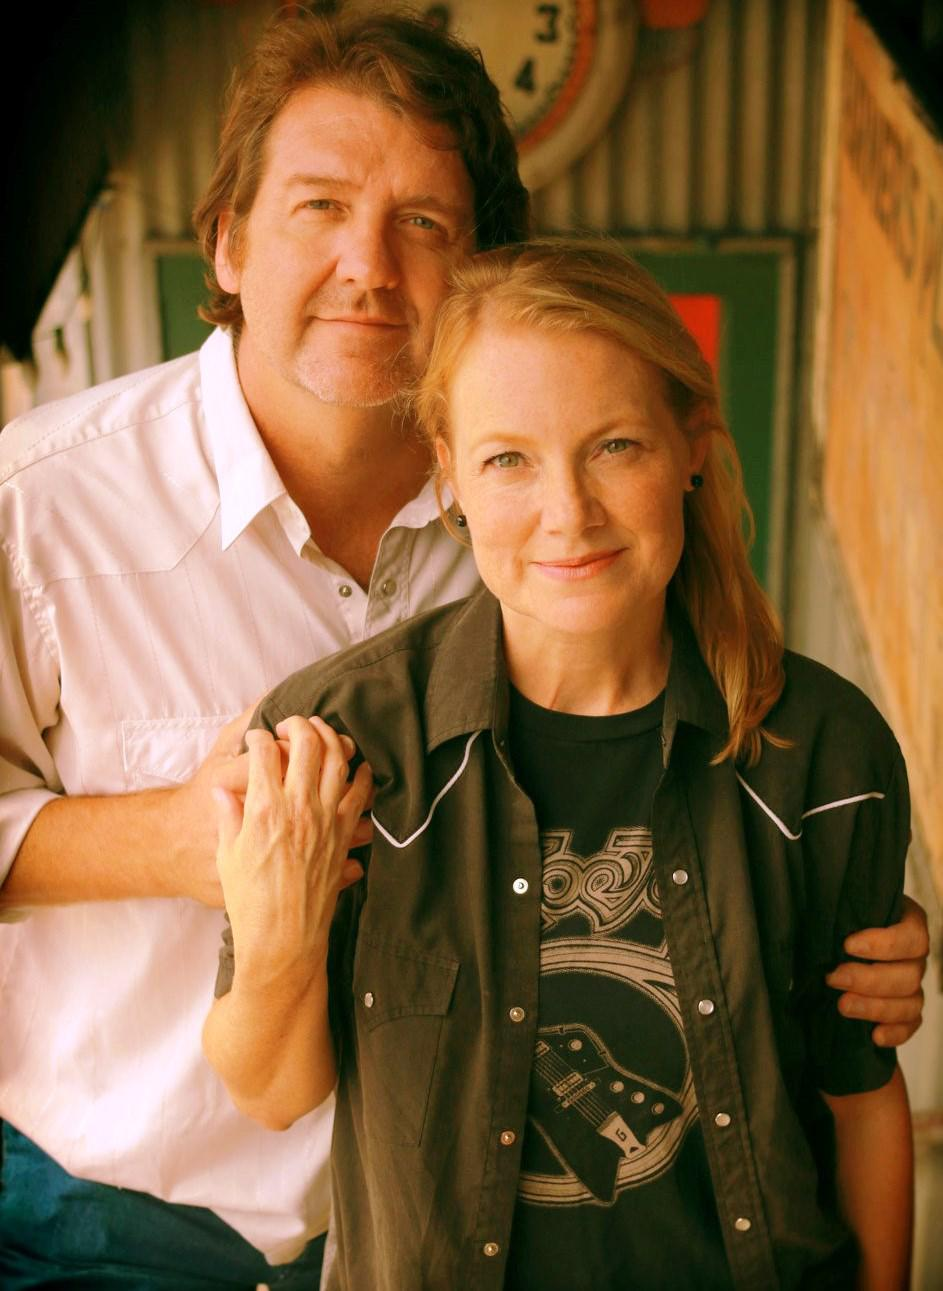 Bruce Robison and Kelly Willis bring their Holiday Shindig to Gruene Hall on Dec. 2, 2017